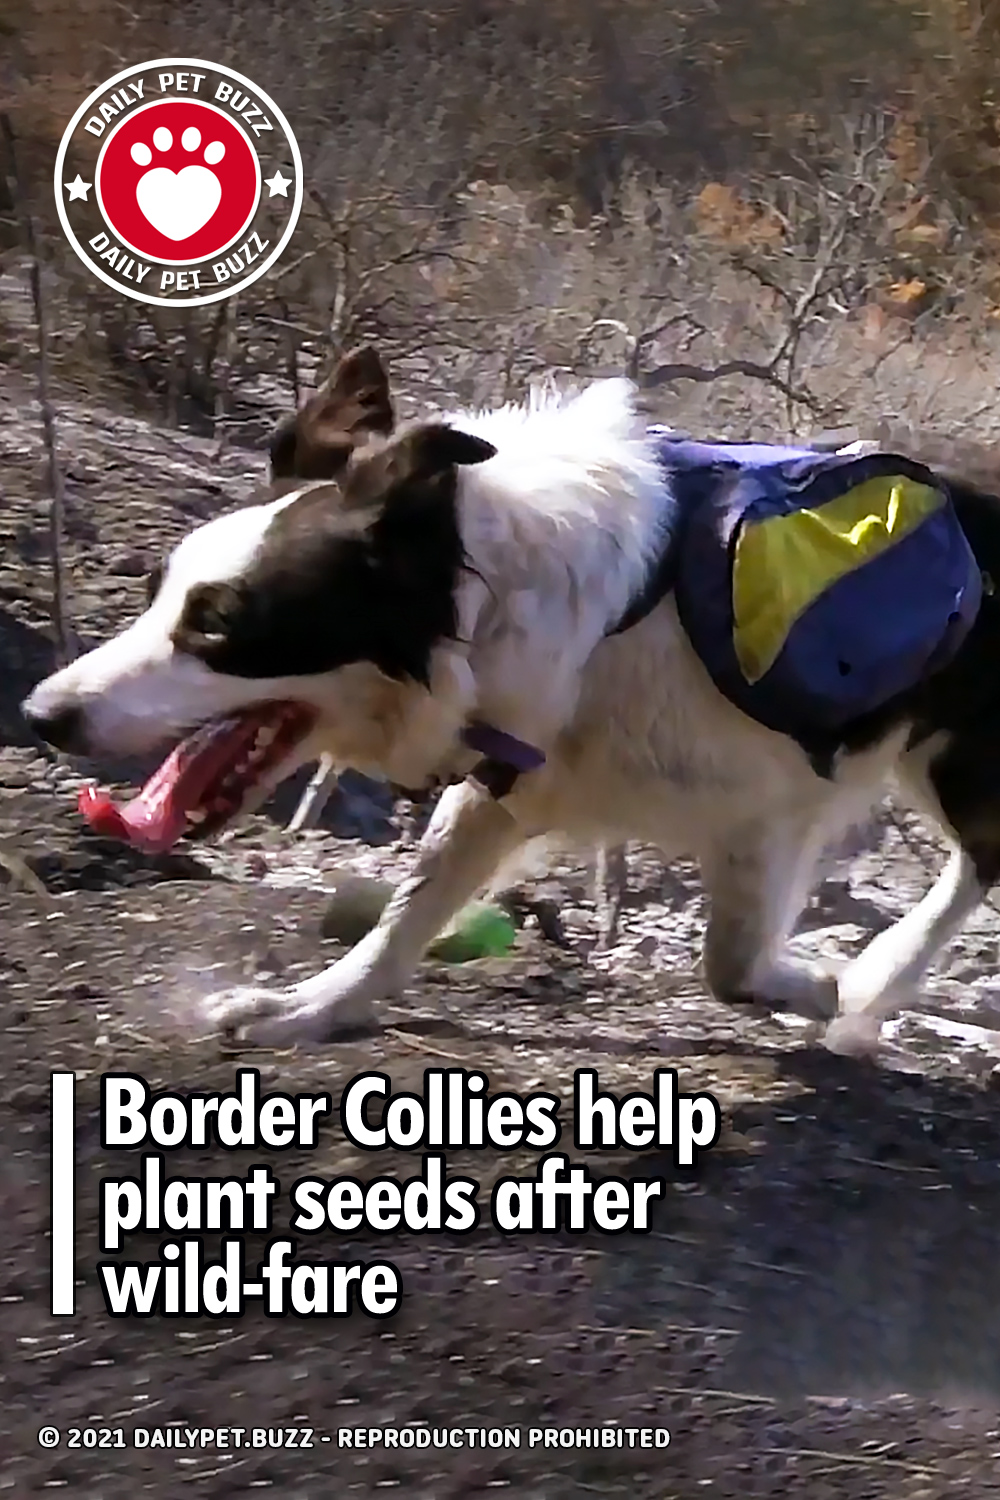 Border Collies help plant seeds after wild-fire